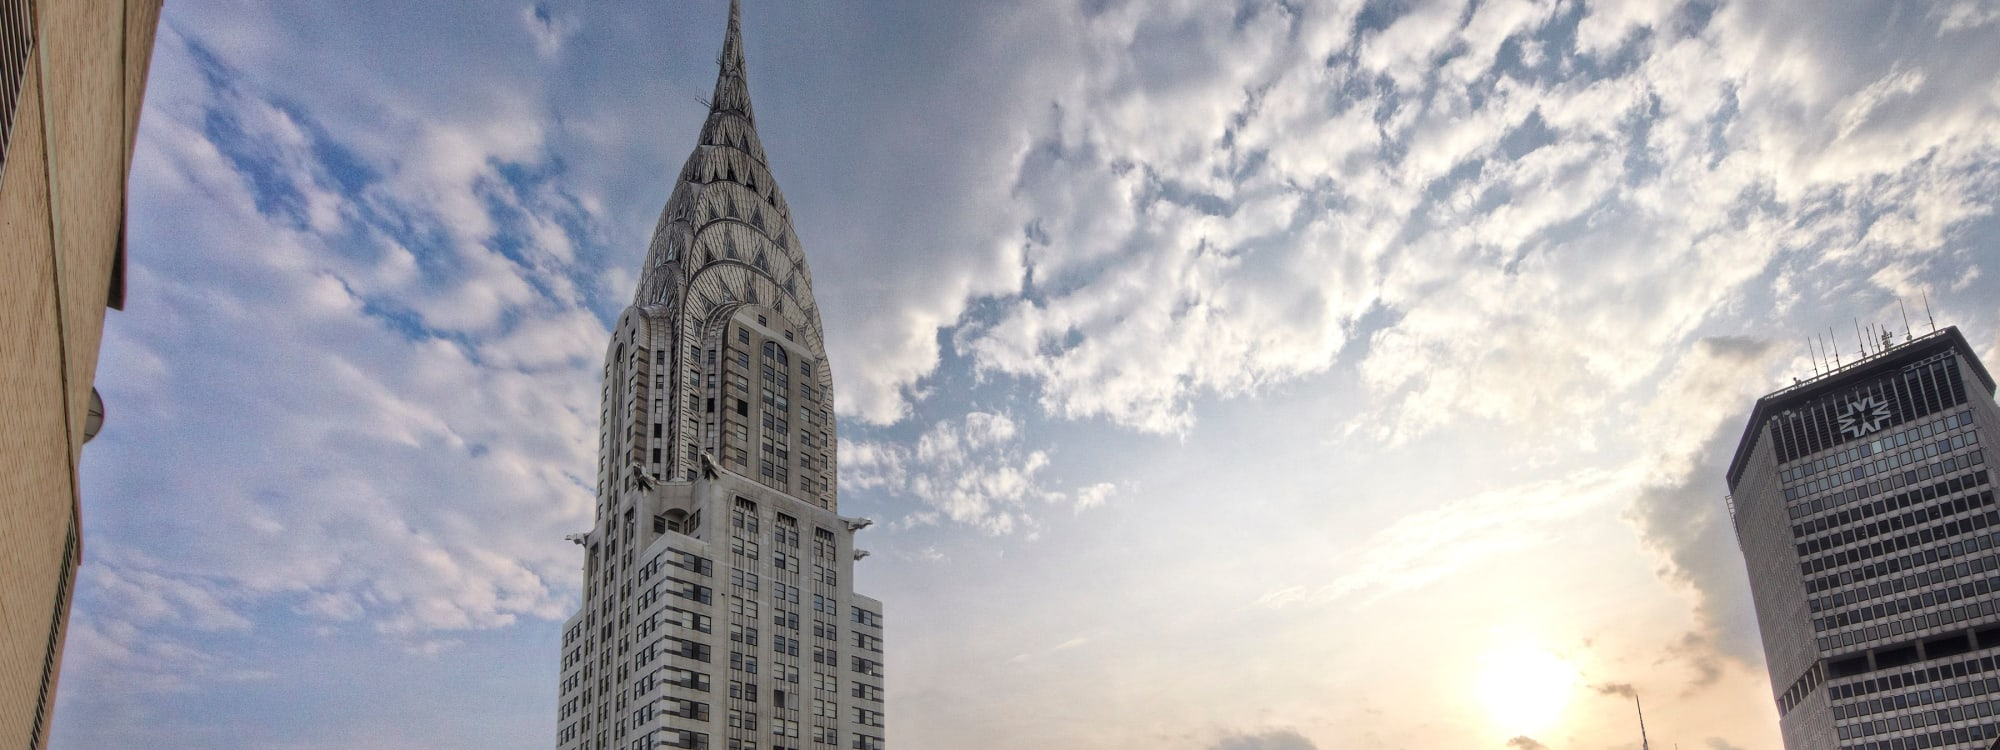 Privacy Policy at The Metropolis in New York, New York